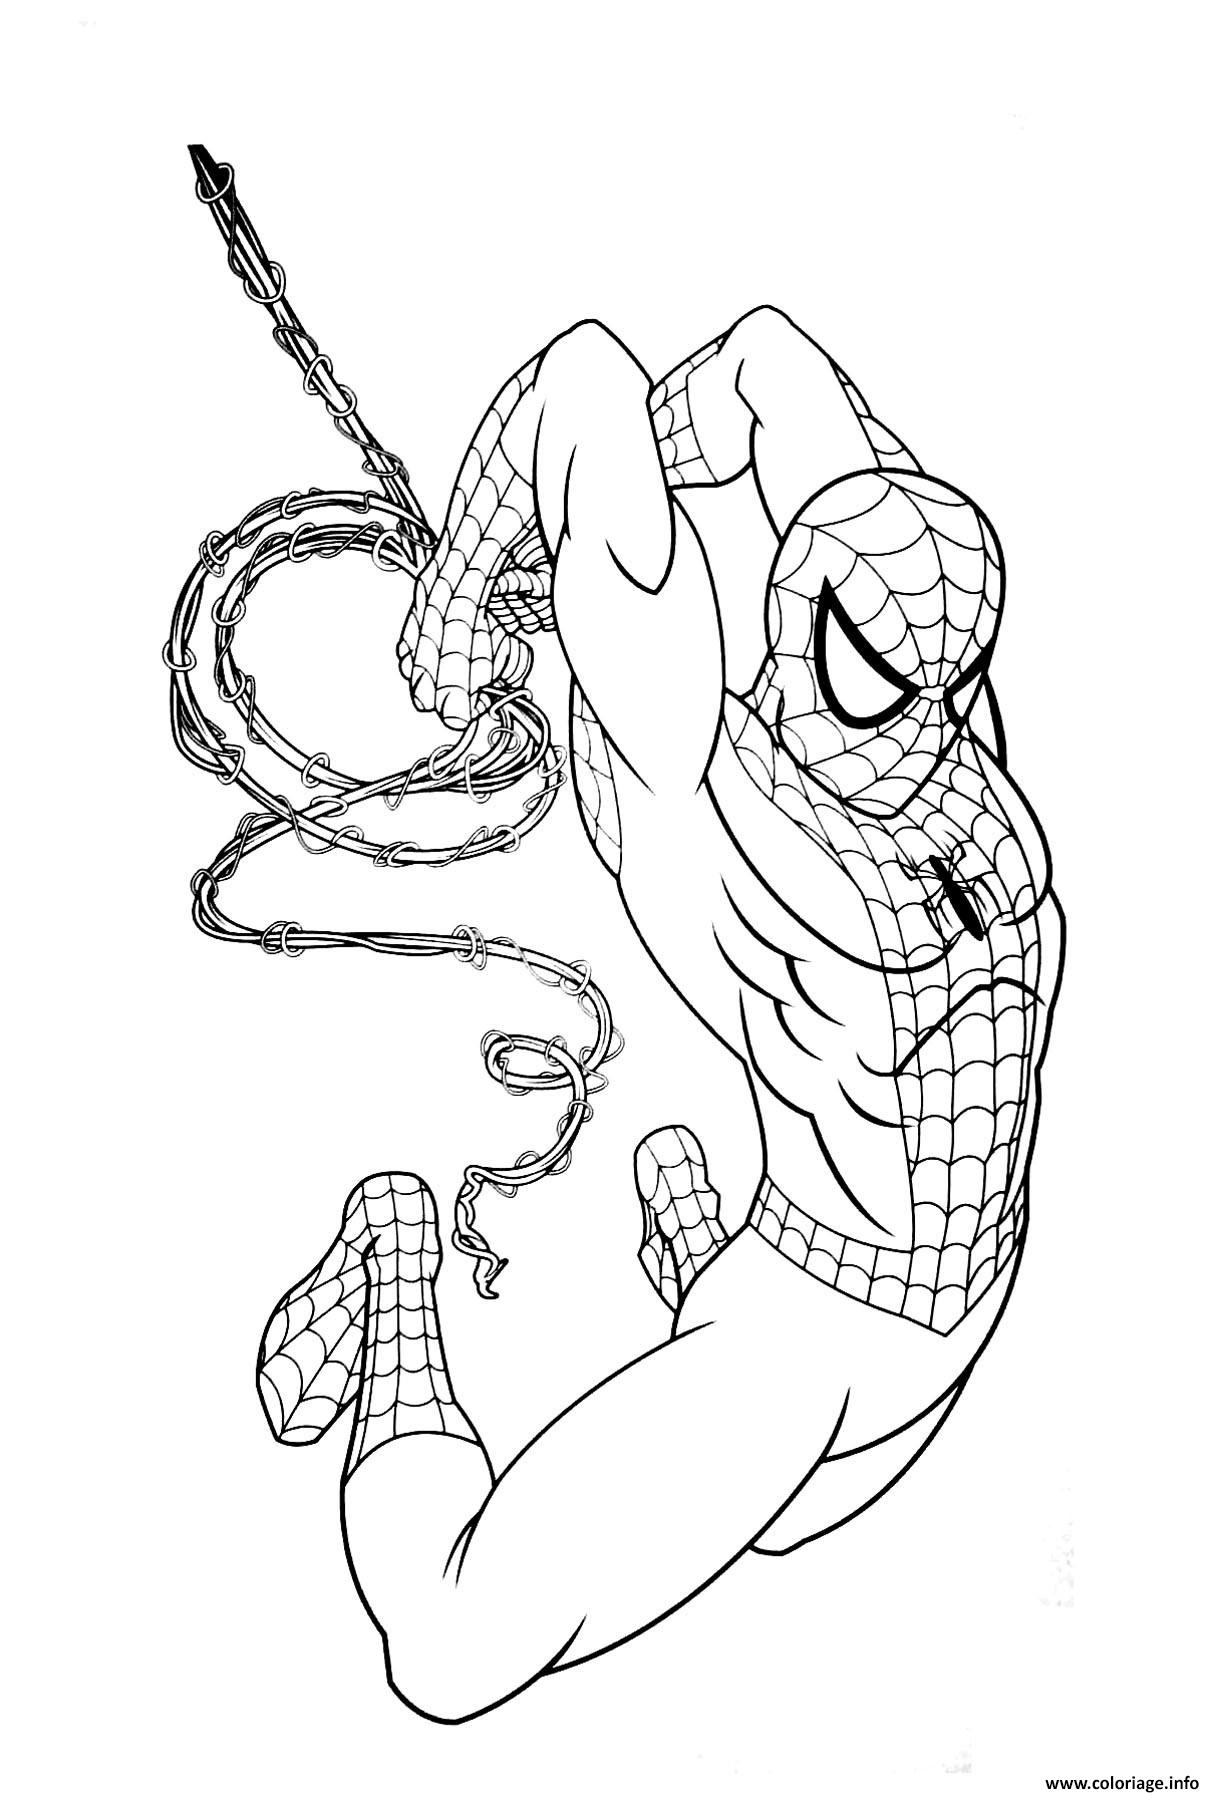 Coloriage avengers endgame spiderman dessin - Coloriage a imprimer spiderman homecoming ...